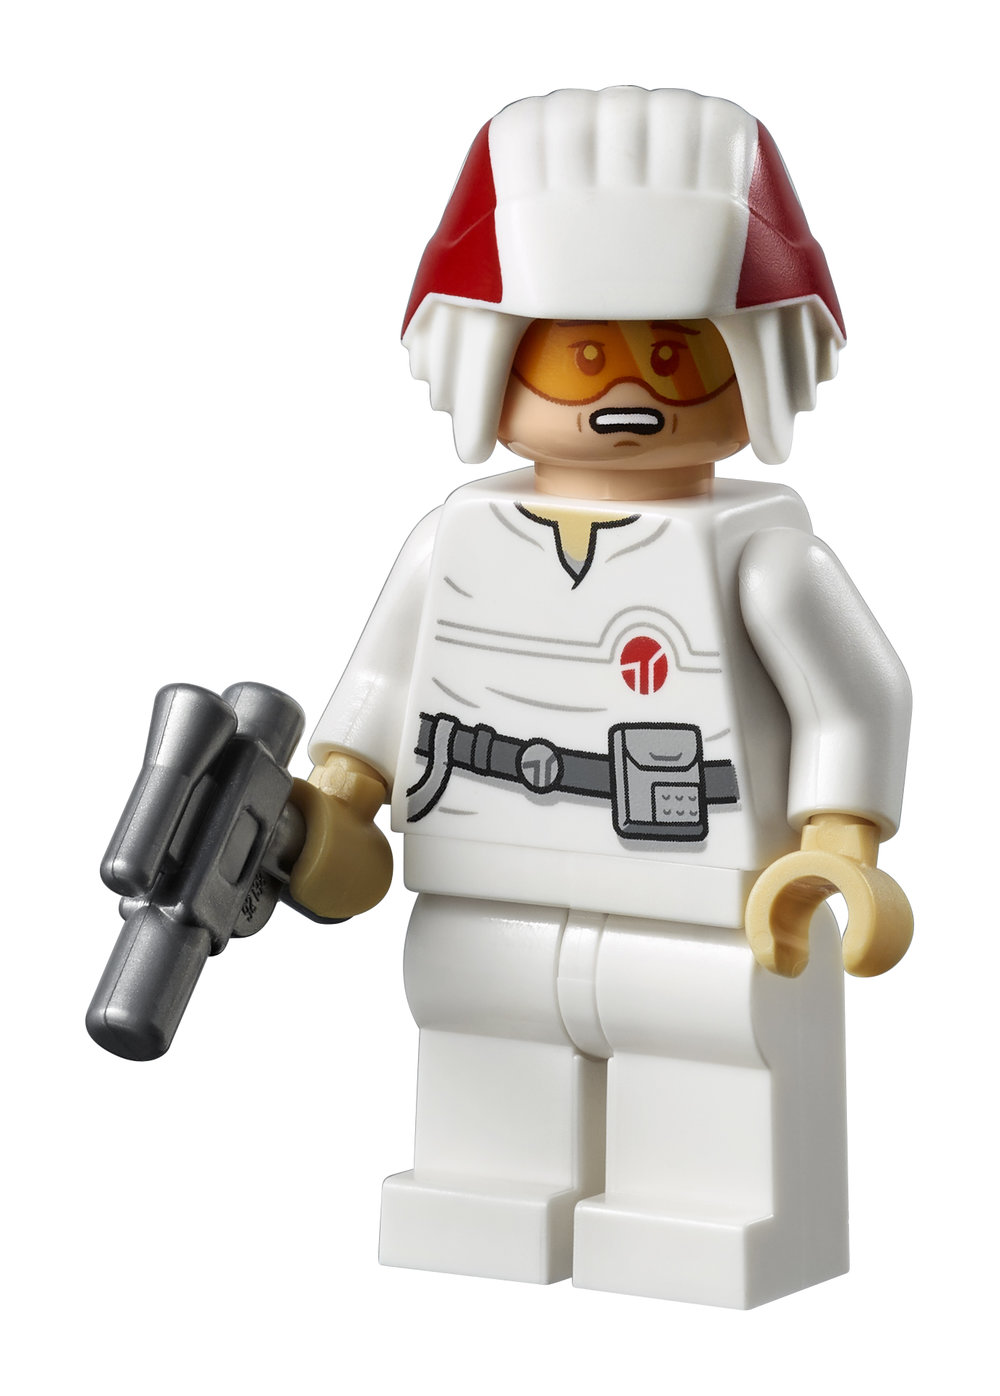 75222_Top_Panel_Minifigure_05.jpg